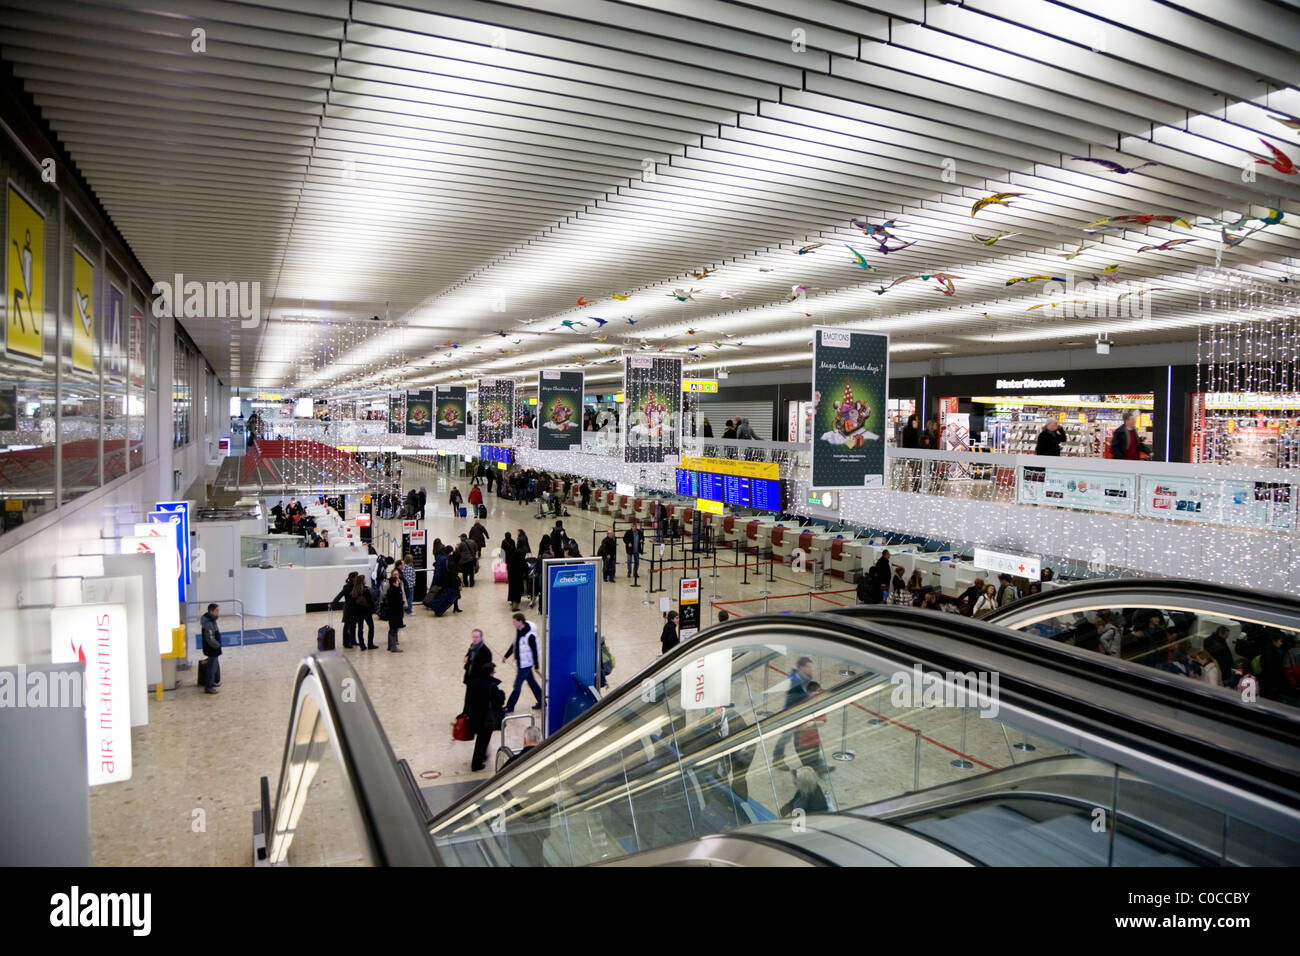 main international terminal departure hall check in area desks stock photo 34693903 alamy. Black Bedroom Furniture Sets. Home Design Ideas